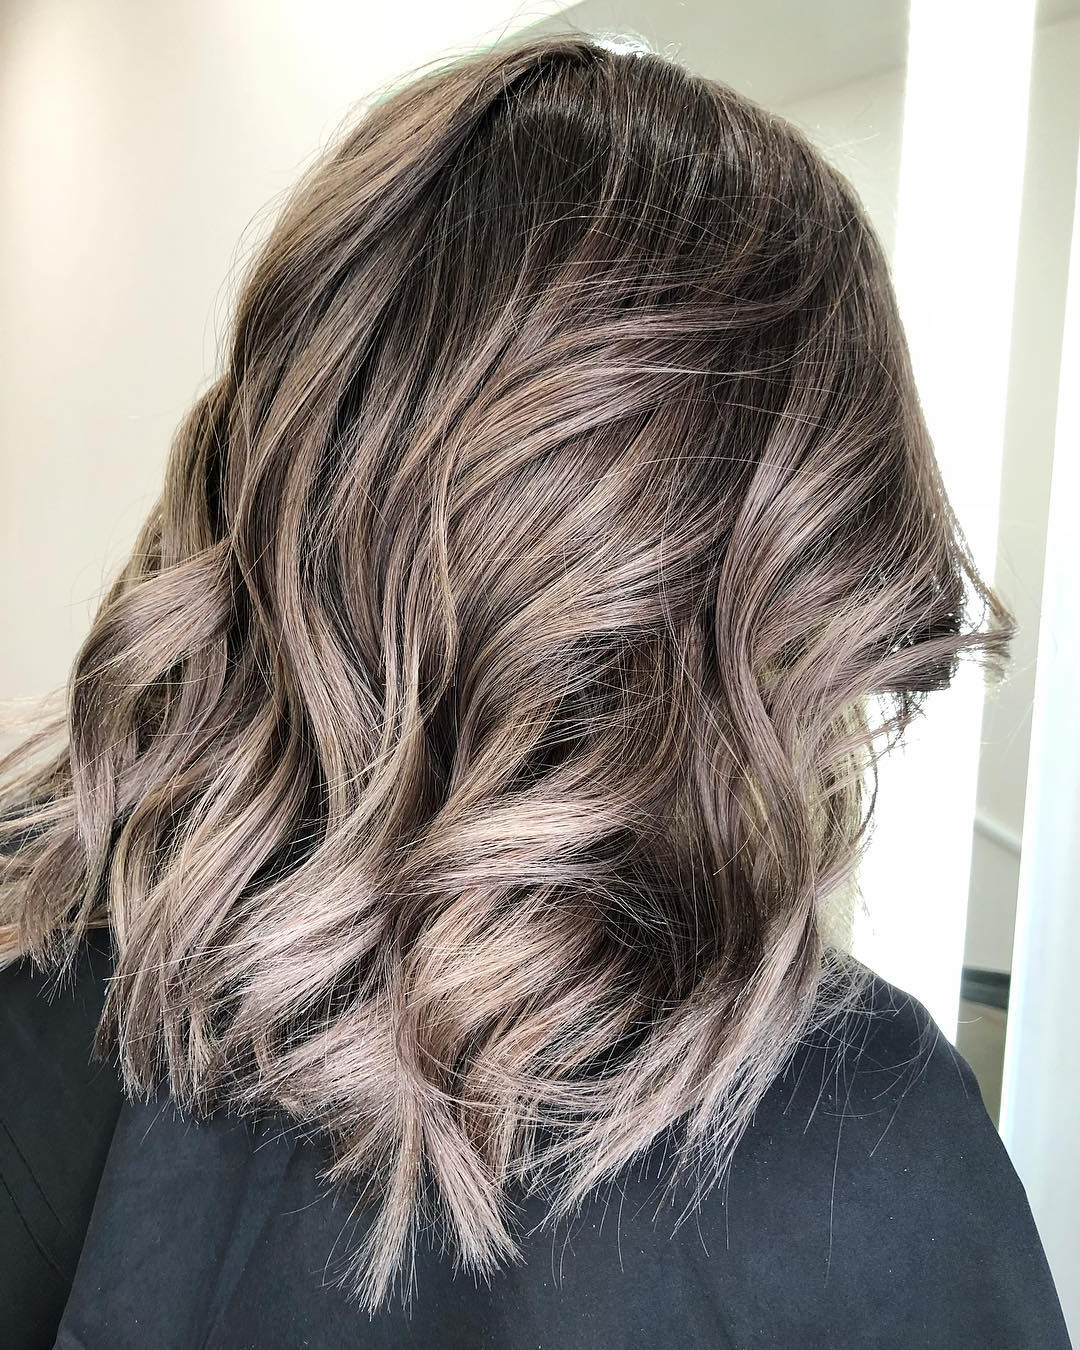 Latest Long Texture Revealing Layers Hairstyles Pertaining To 10 Balayage Hair Styles For Medium Length Hair 2019 – Freshen Up (View 14 of 20)